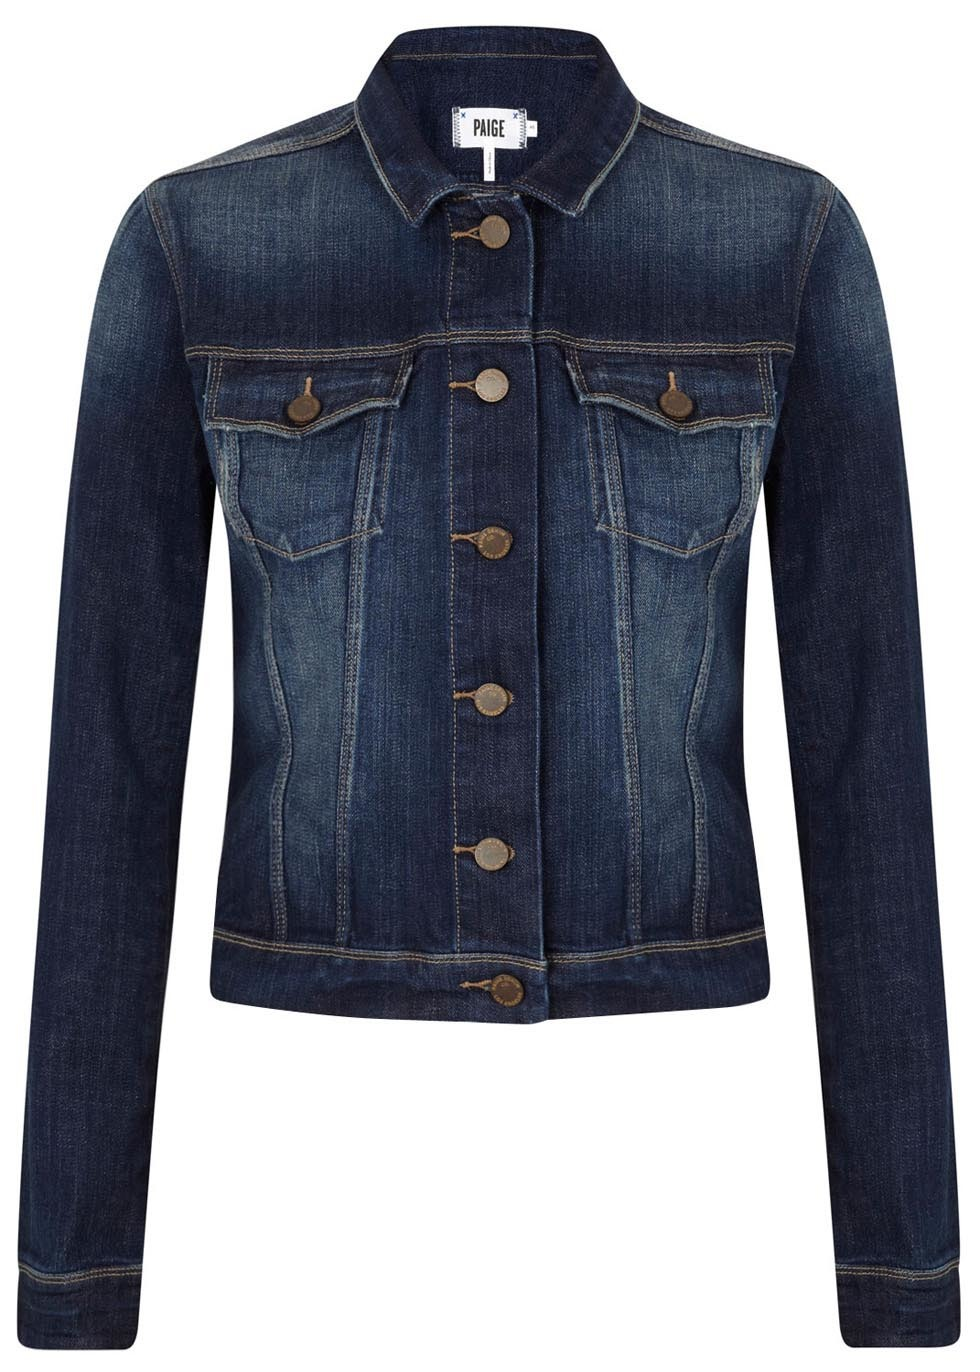 Dark Blue Denim Jacket Size - pattern: plain; style: denim; predominant colour: navy; occasions: casual, creative work; length: standard; fit: tailored/fitted; fibres: cotton - stretch; collar: shirt collar/peter pan/zip with opening; sleeve length: long sleeve; sleeve style: standard; texture group: denim; collar break: high/illusion of break when open; pattern type: fabric; season: a/w 2014; wardrobe: basic